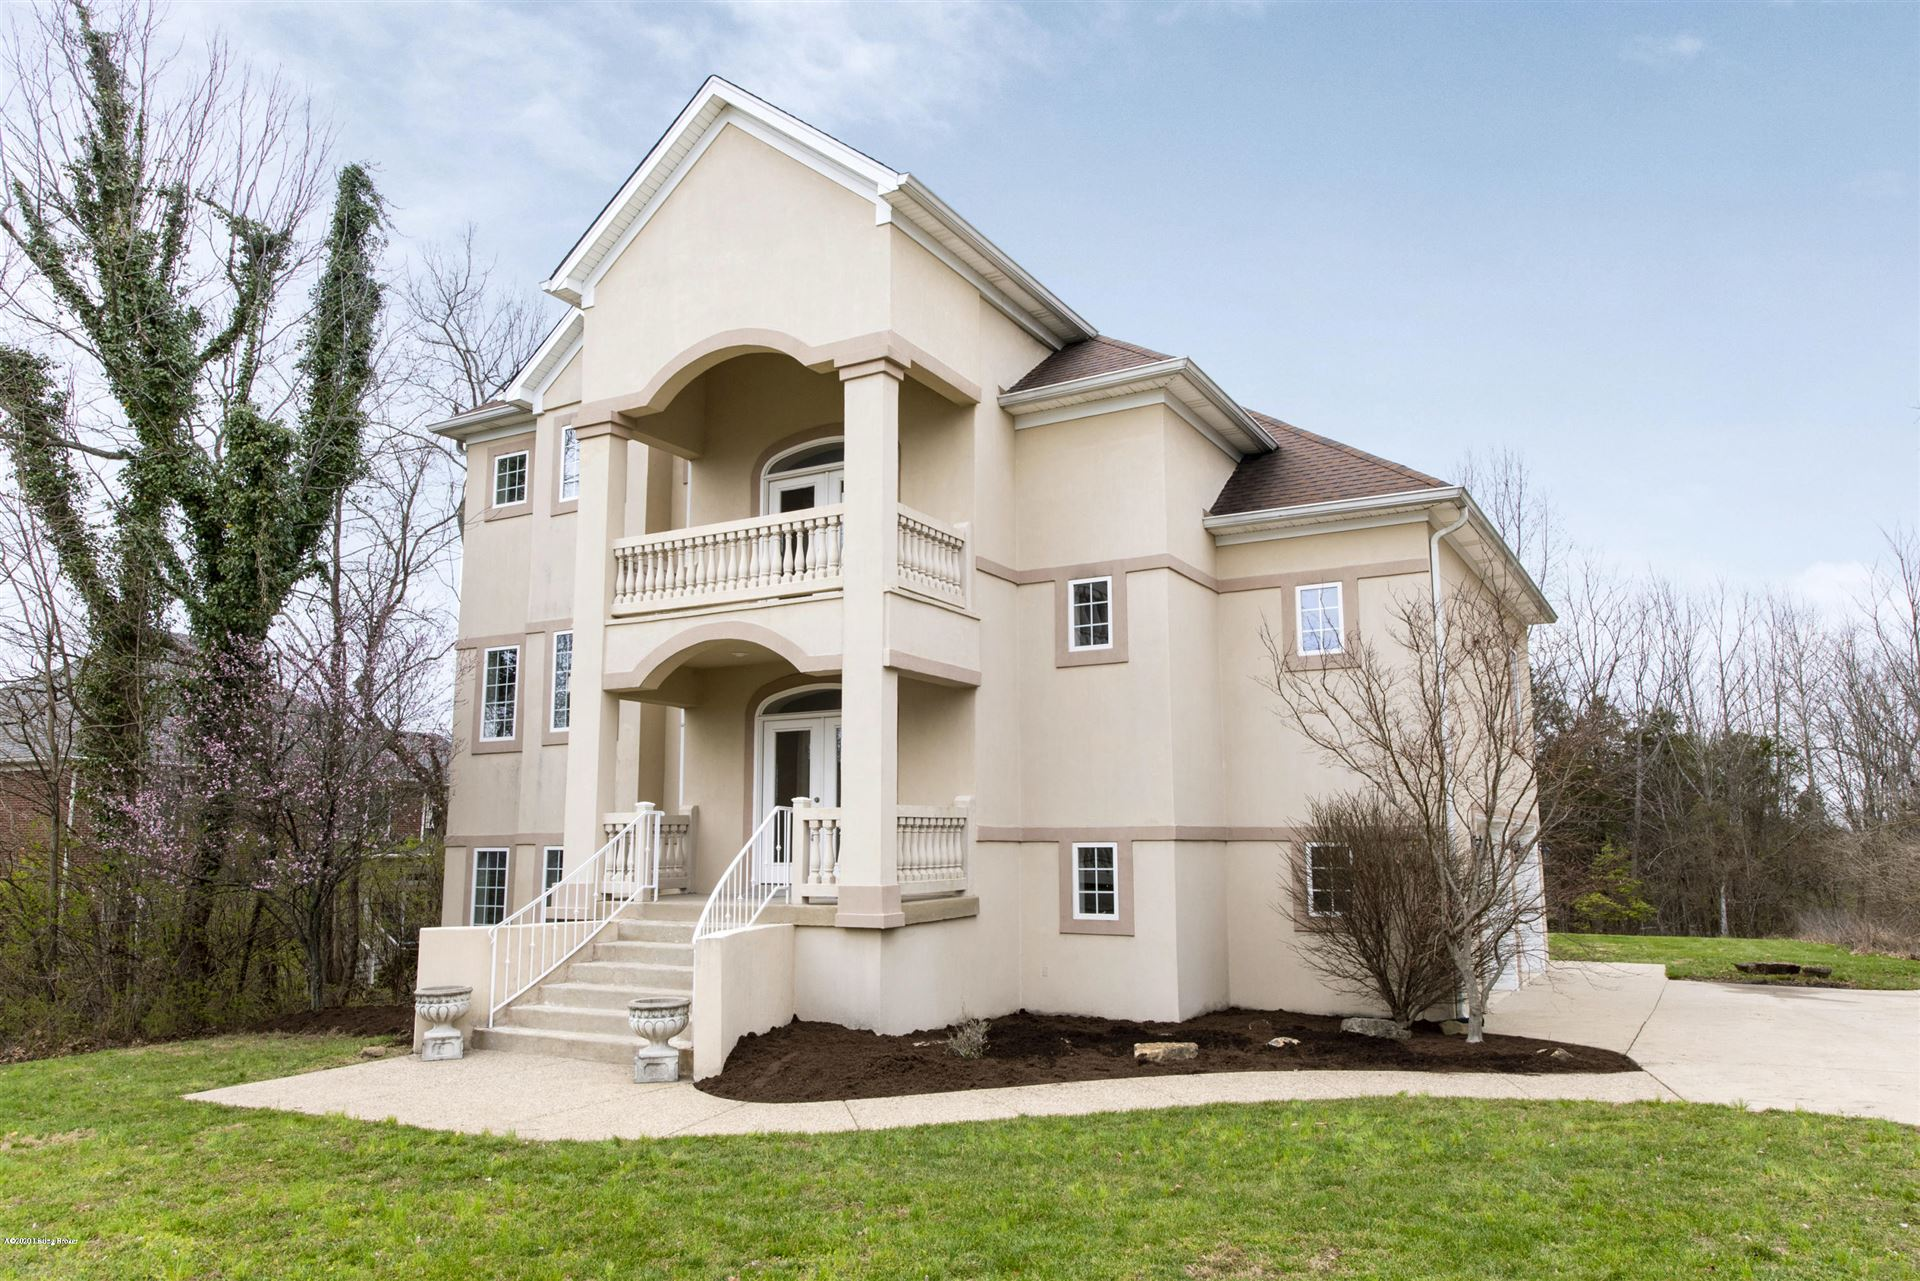 Property Image Of 7102 Jones Trace In Crestwood, Ky